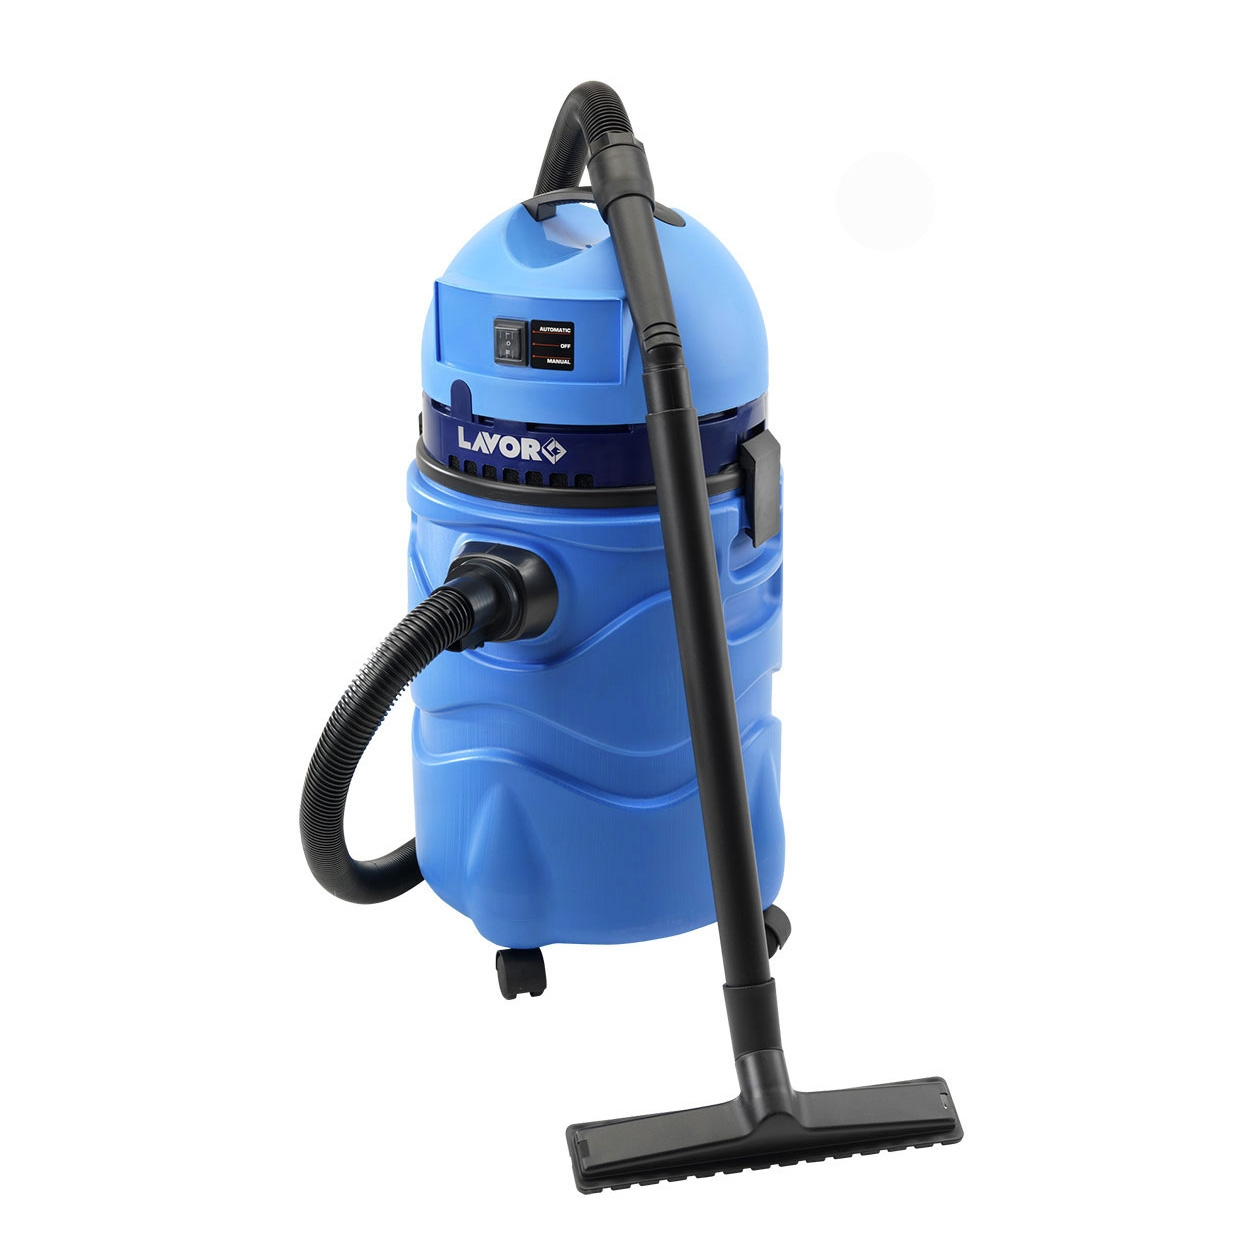 Lavor Swimmy Vacuum Cleaner for pools and ponds 240V